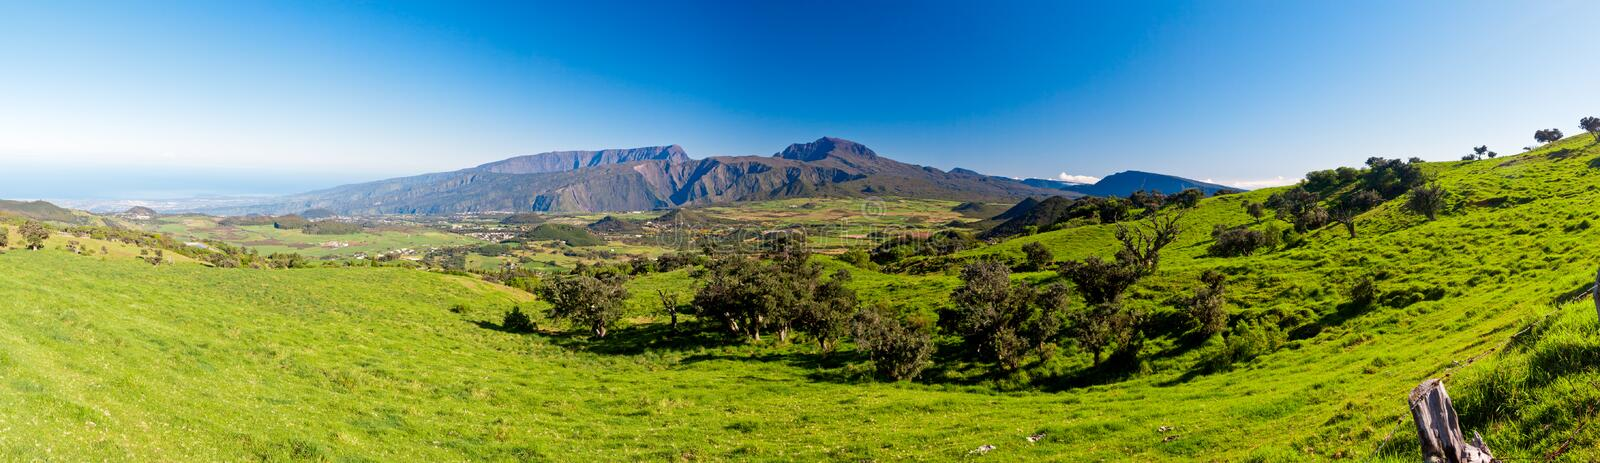 Reunion Island Landscape Stock Photo